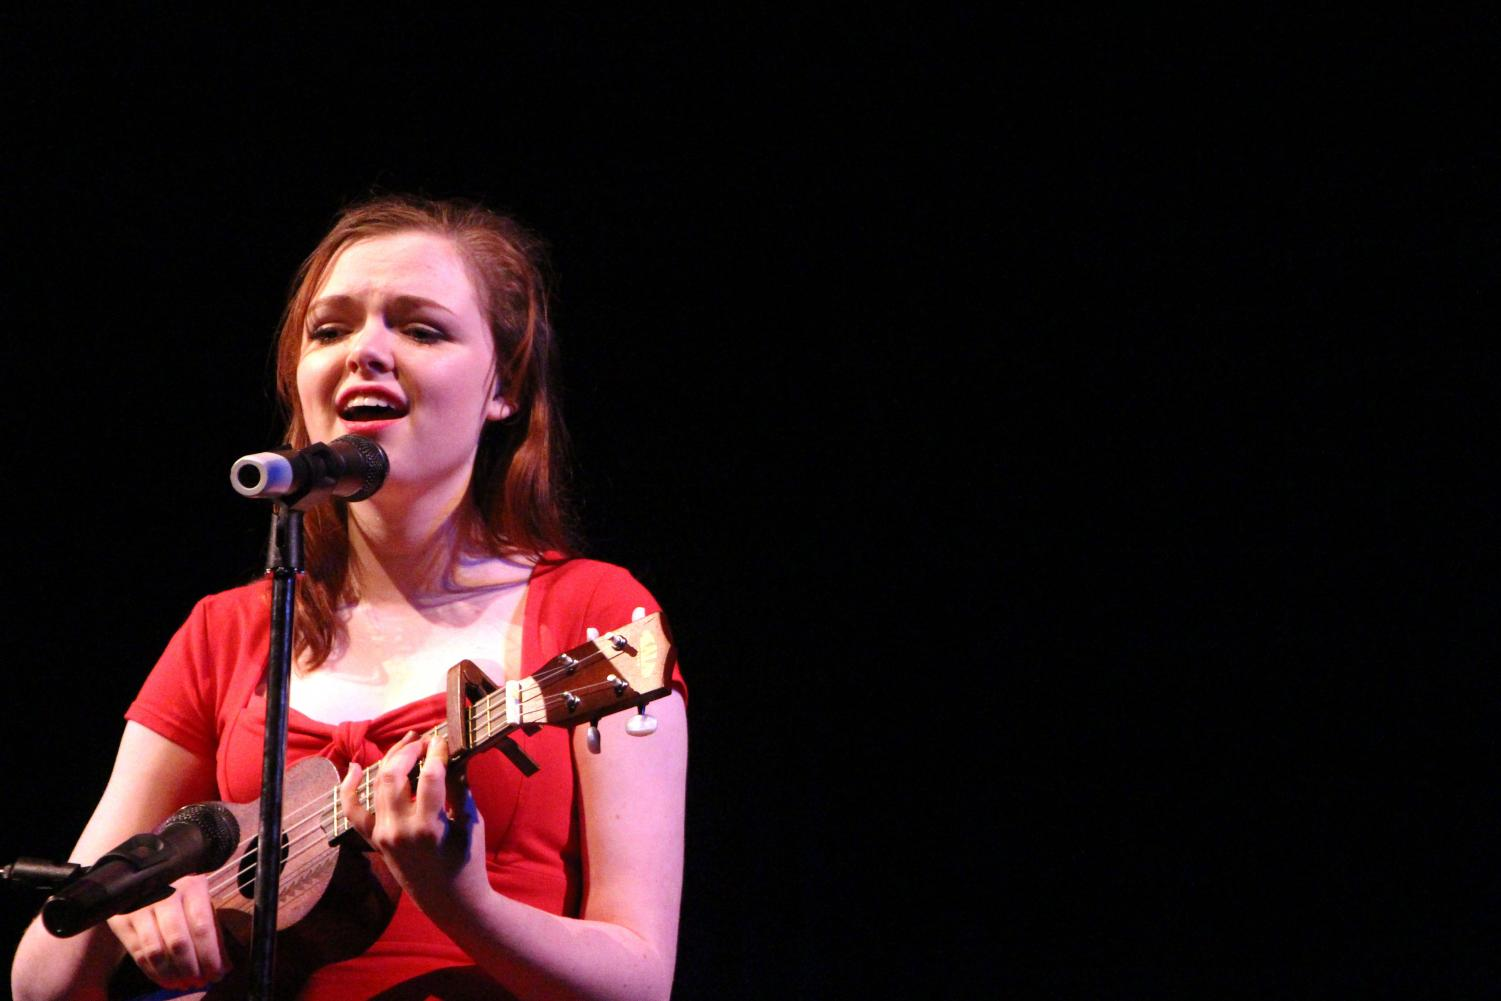 Mackenzie+Bezio%2C+senior%2C+performs+%E2%80%9CLemon+Boy%E2%80%9D+by+Cavetown+on+the+ukulele.+%E2%80%9CI+was+nervous%2C+but+super+excited+to+perform+for+a+good+cause%2C%E2%80%9D+Bezio+said.+%E2%80%9C18+percent+of+girls+in+India+don%E2%80%99t+have+access+to+feminine+hygiene+products%2C+which+makes+it+really+difficult+for+them+to+live+their+lives+or+get+an+education.+I+just+hoped+that+by+participating+in+the+fundraiser%2C+I+could+help+fix+that+problem.%22